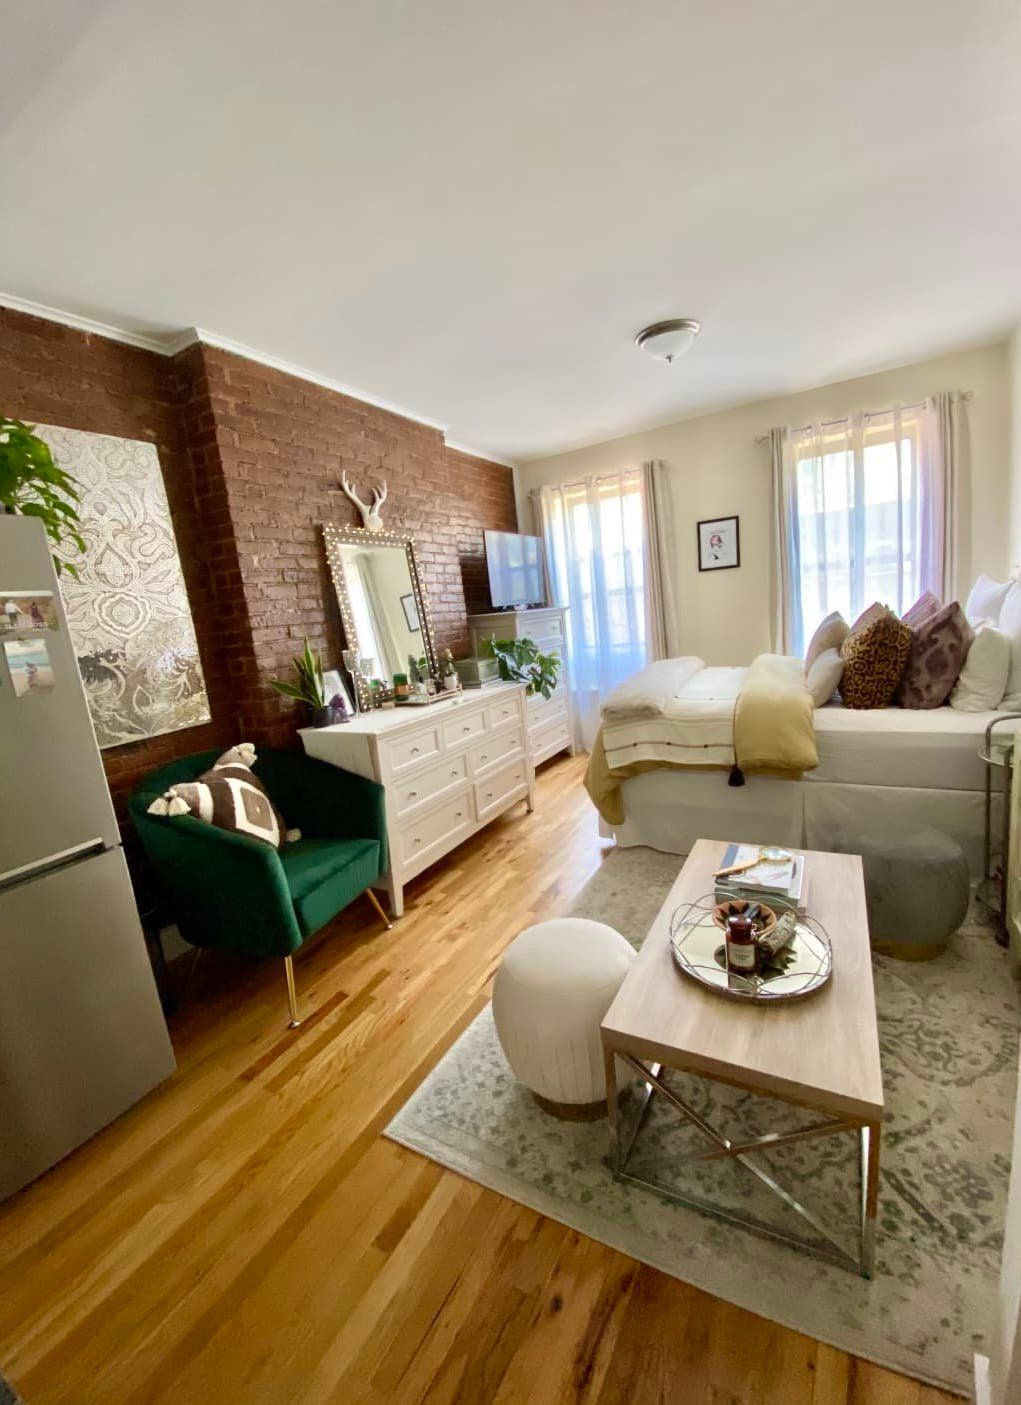 A 300 Square Foot Nyc Studio Apartment Is Like A Glam Little Hotel Room Nyc Studio Apartments Small Studio Apartment Decorating Studio Apartment Decorating